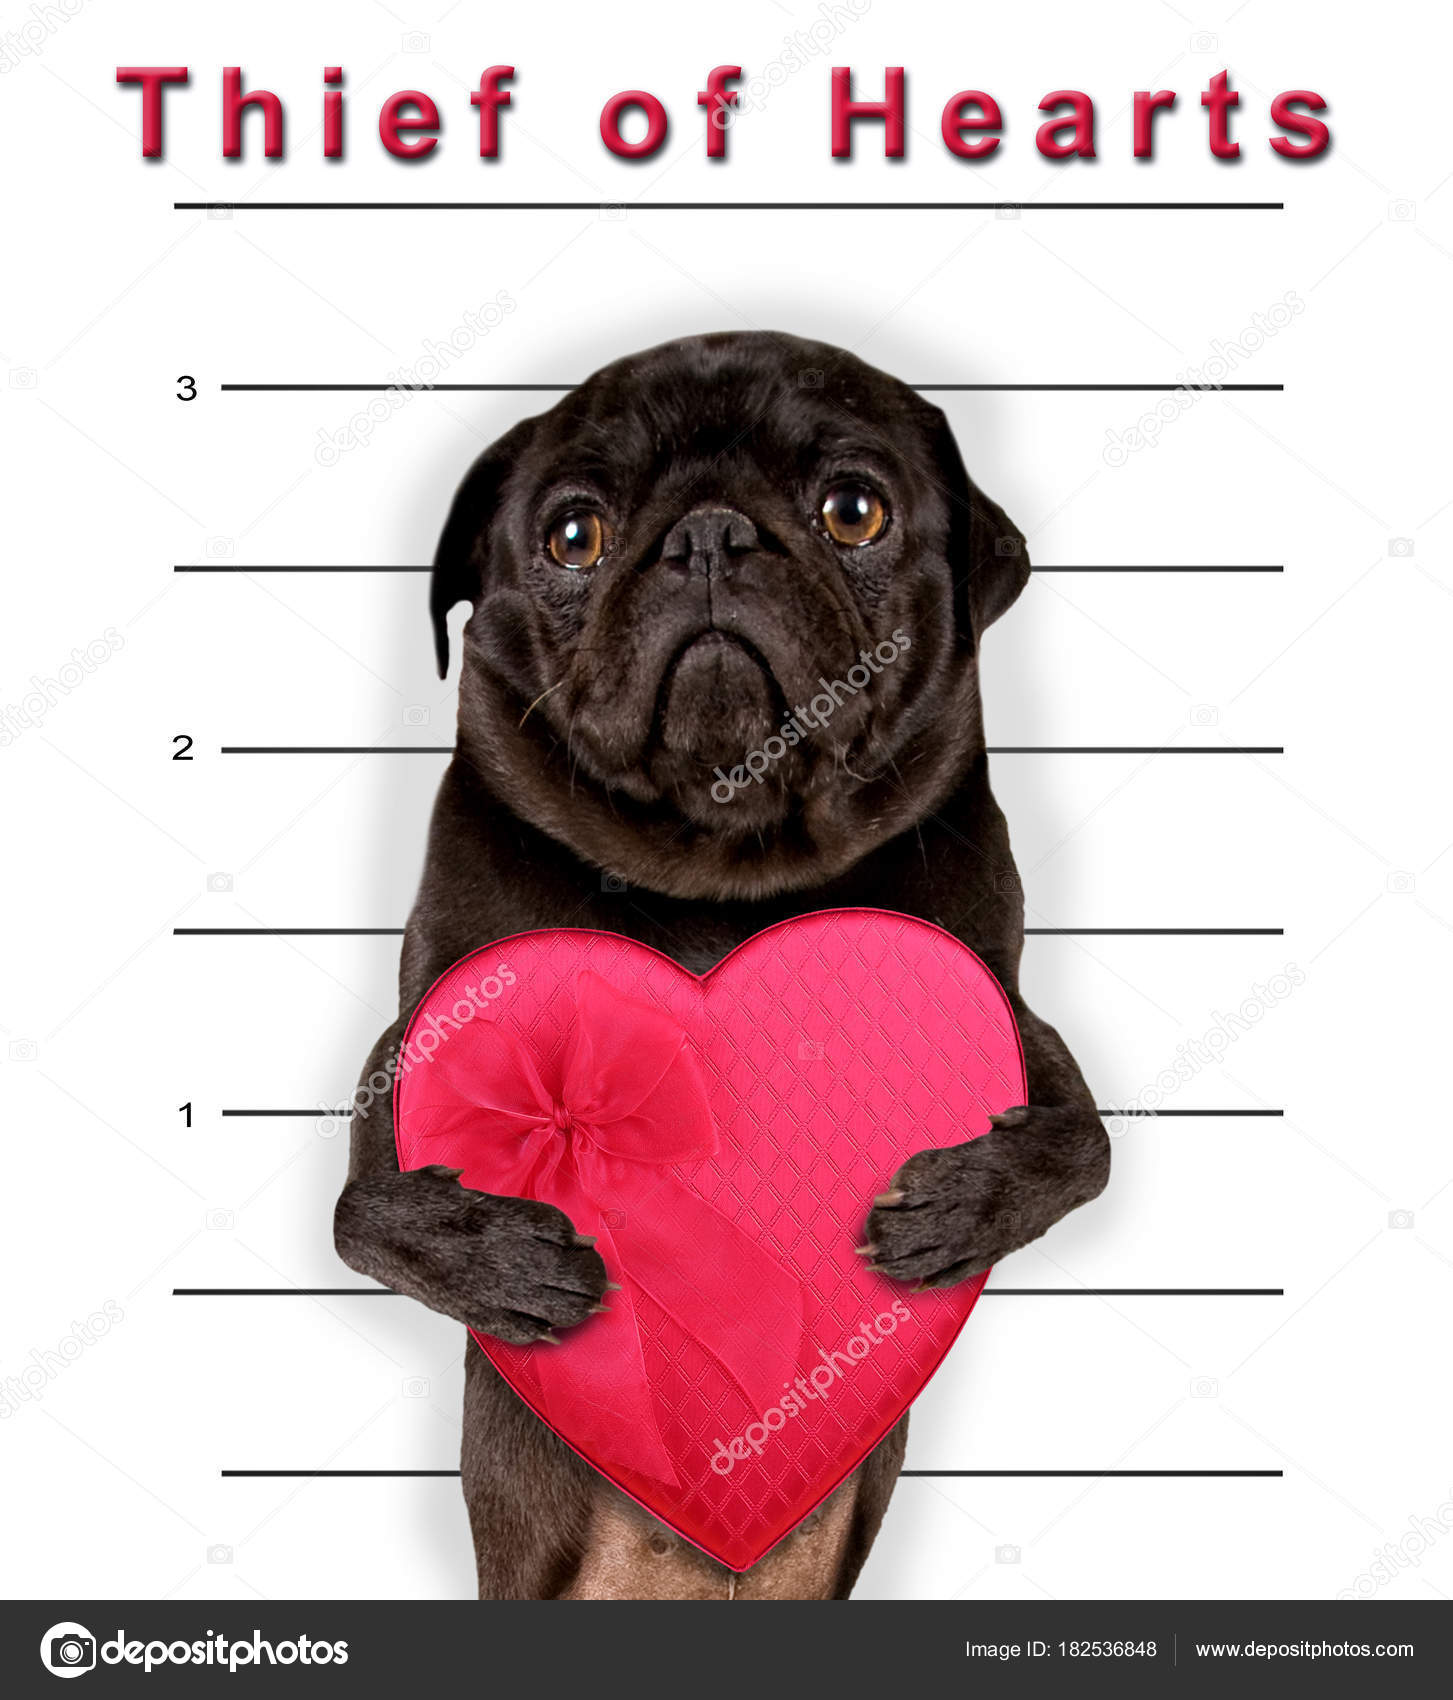 Cute pug holding a heart shaped box of chocolate candy on a